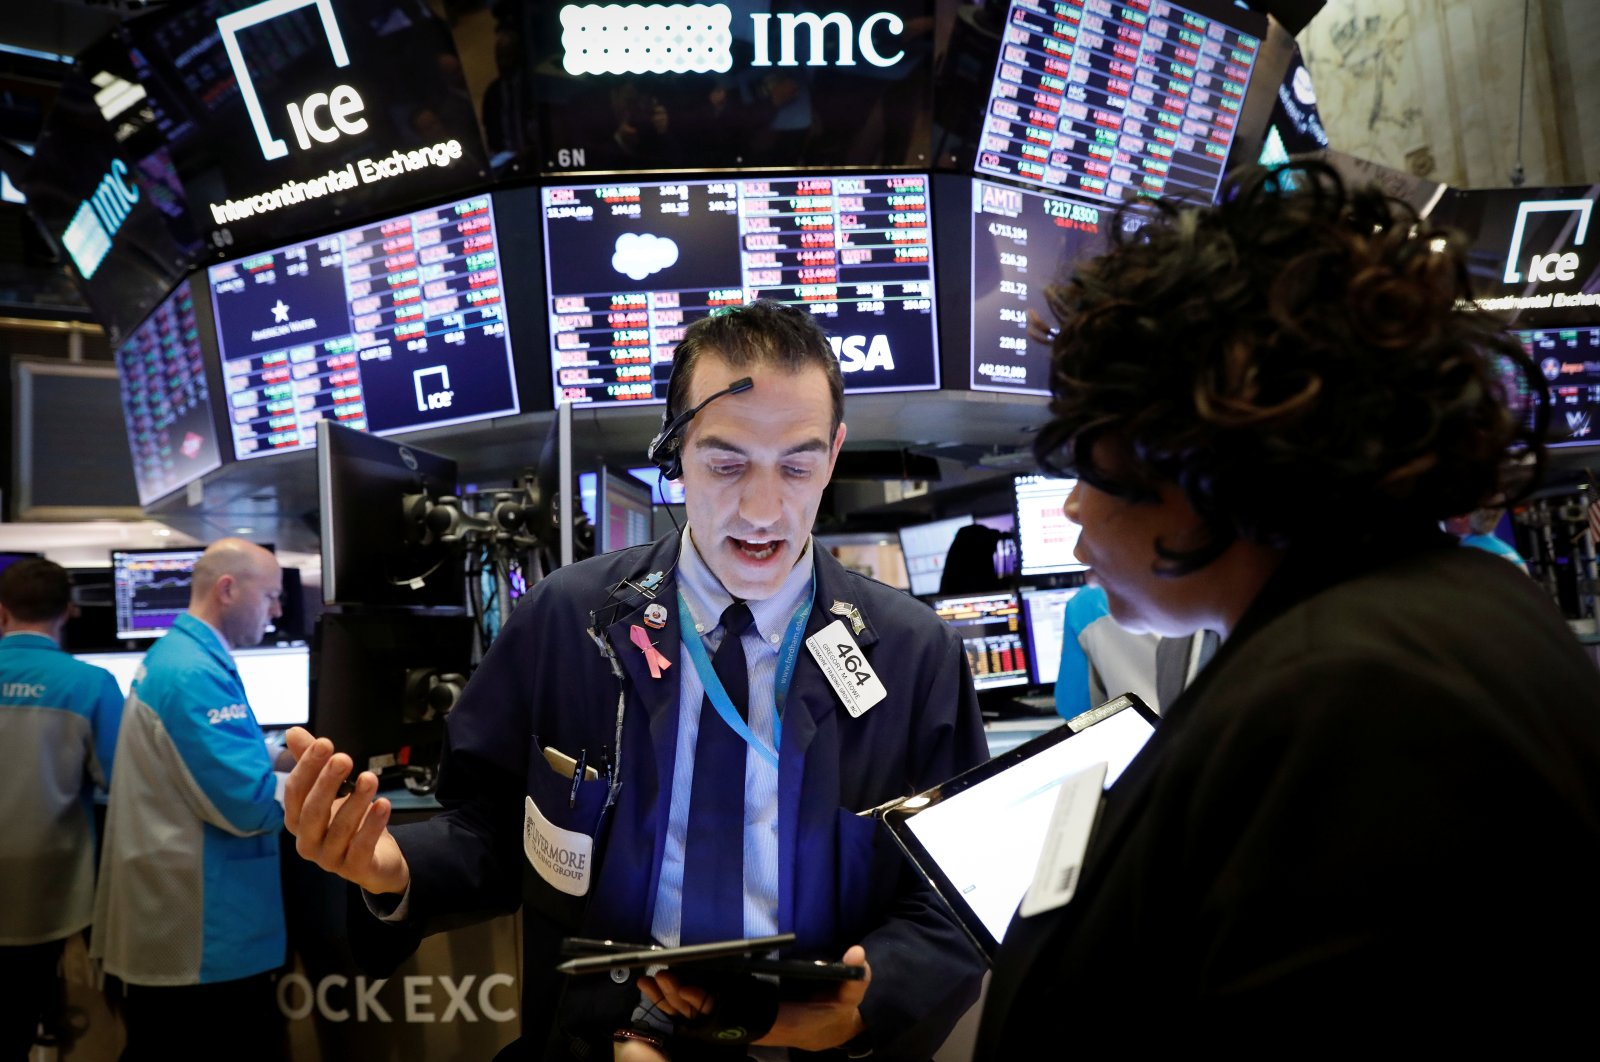 Traders work on the floor of the New York Stock Exchange near the close of trading in New York, U.S., Thursday, March 12, 2020. (Reuters Photo)